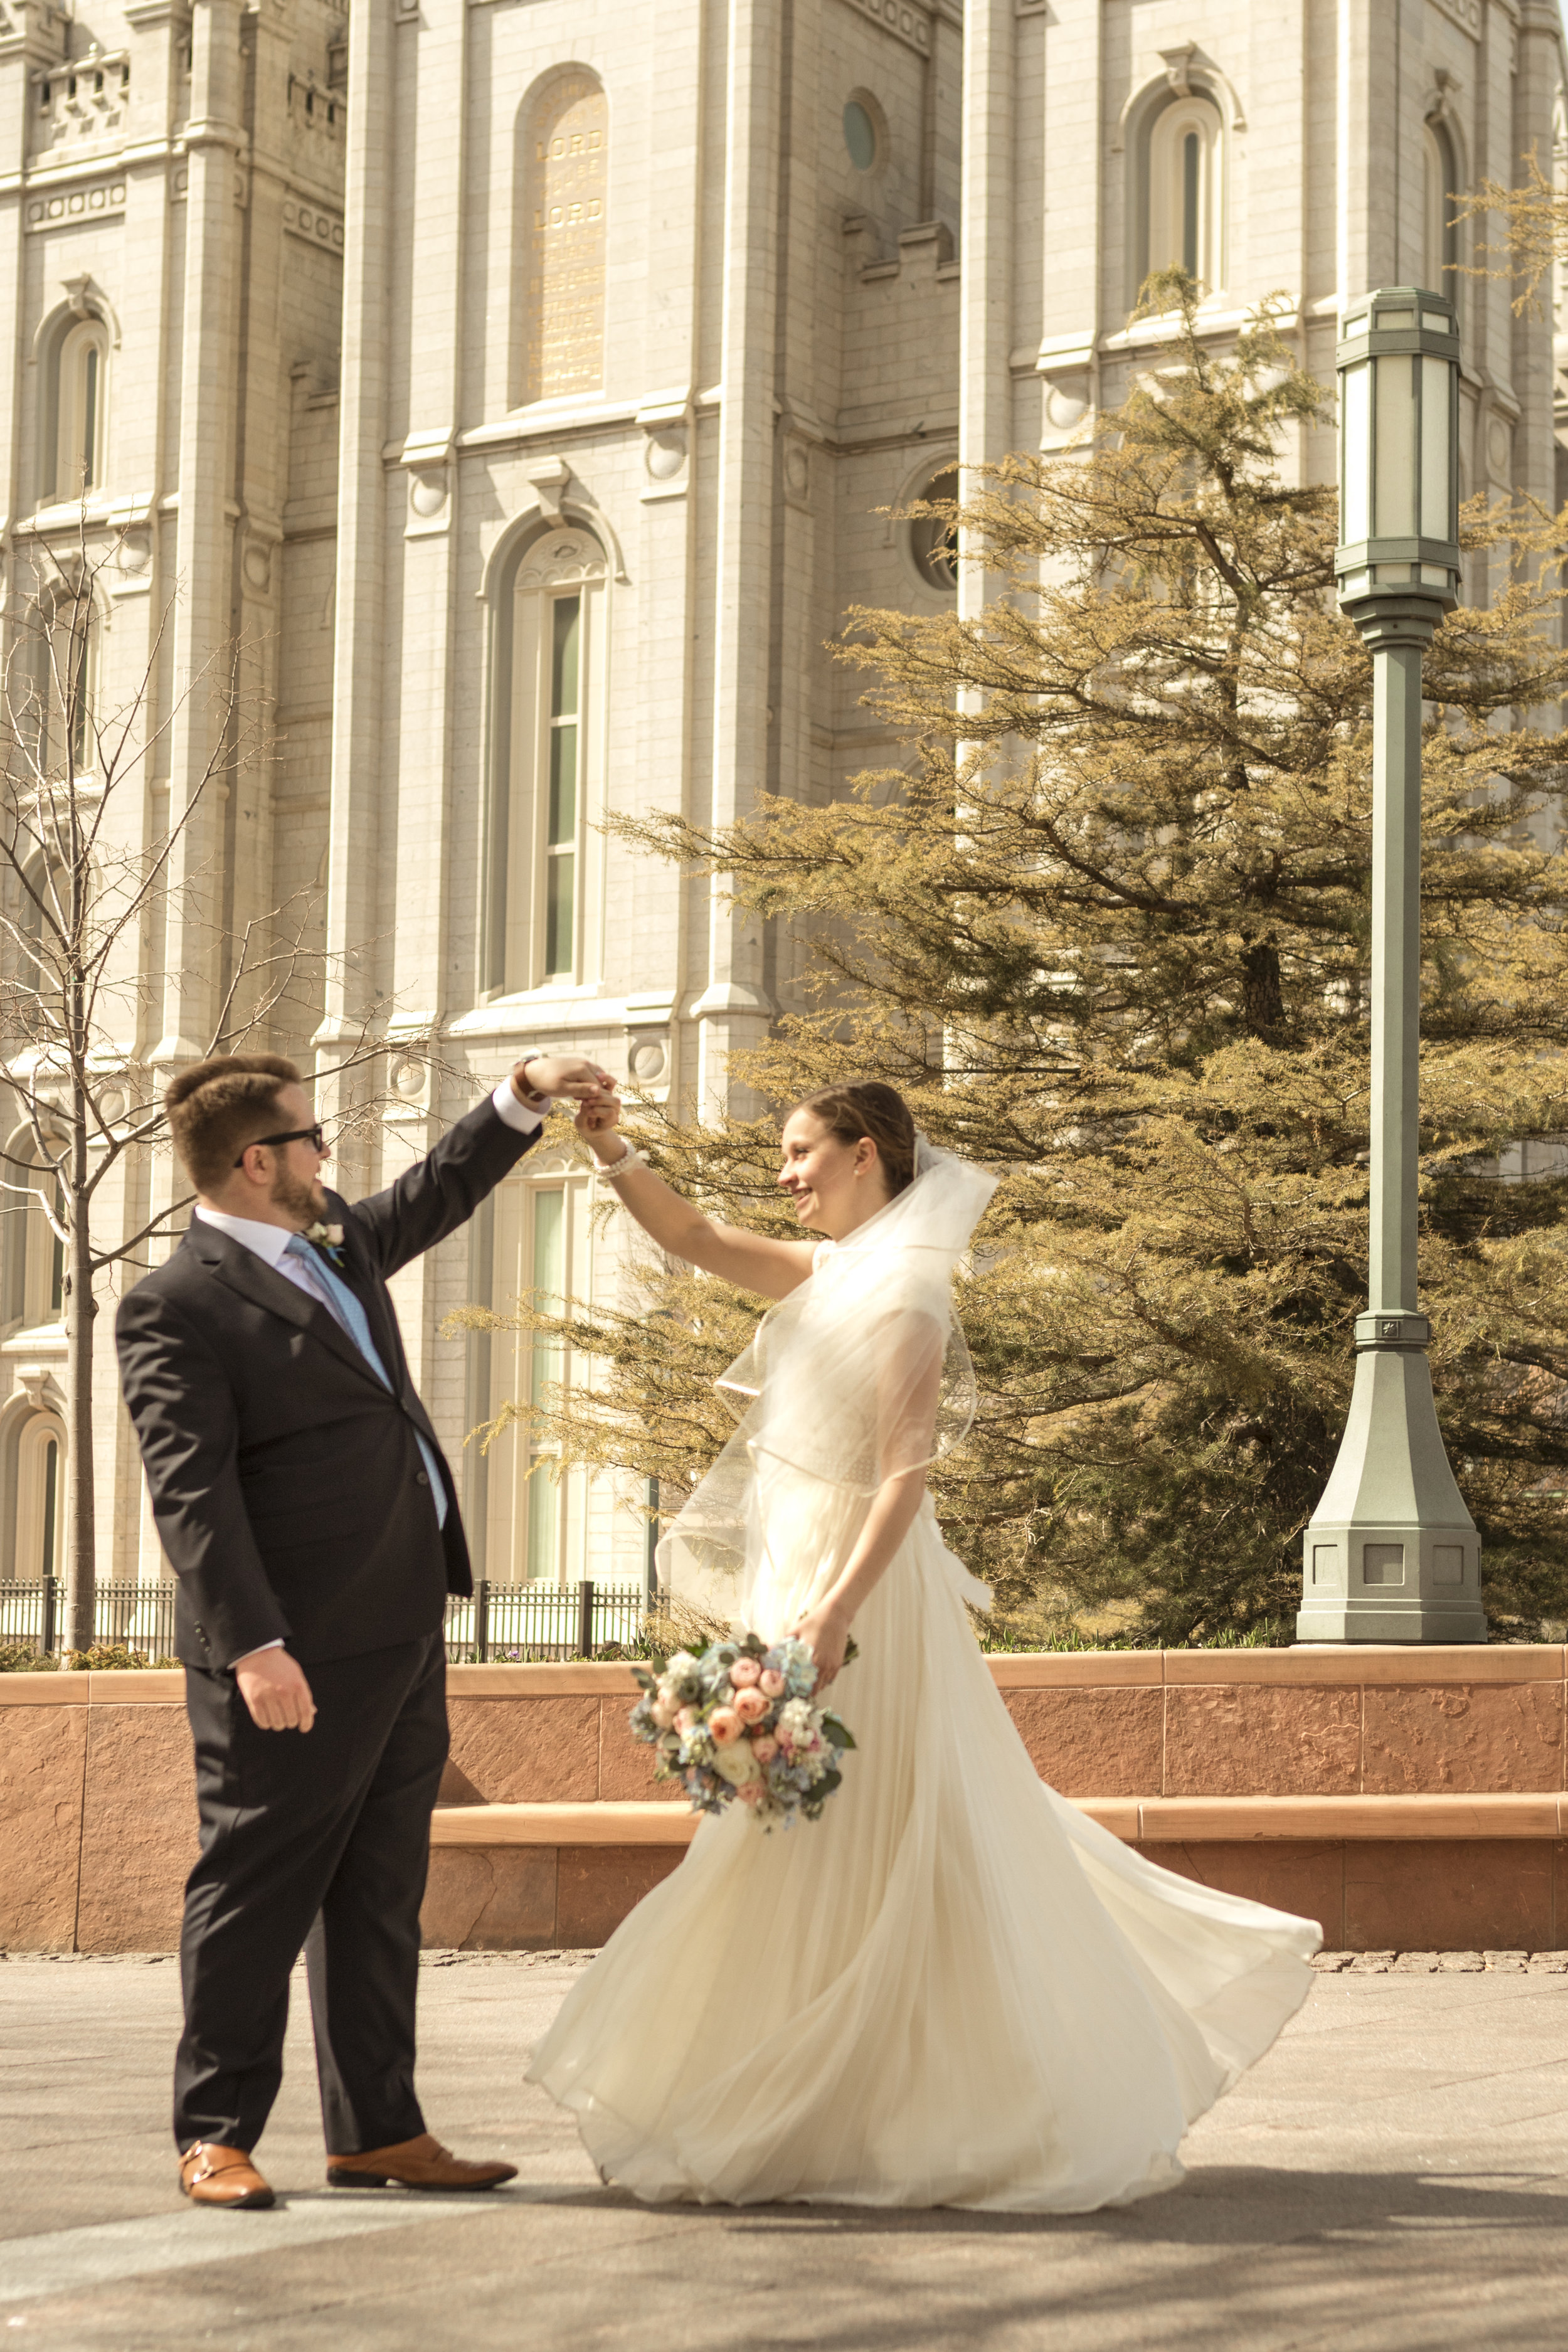 Utah Spring Wedding at the Salt Lake City Temple by Bri Bergman Photography09.JPG